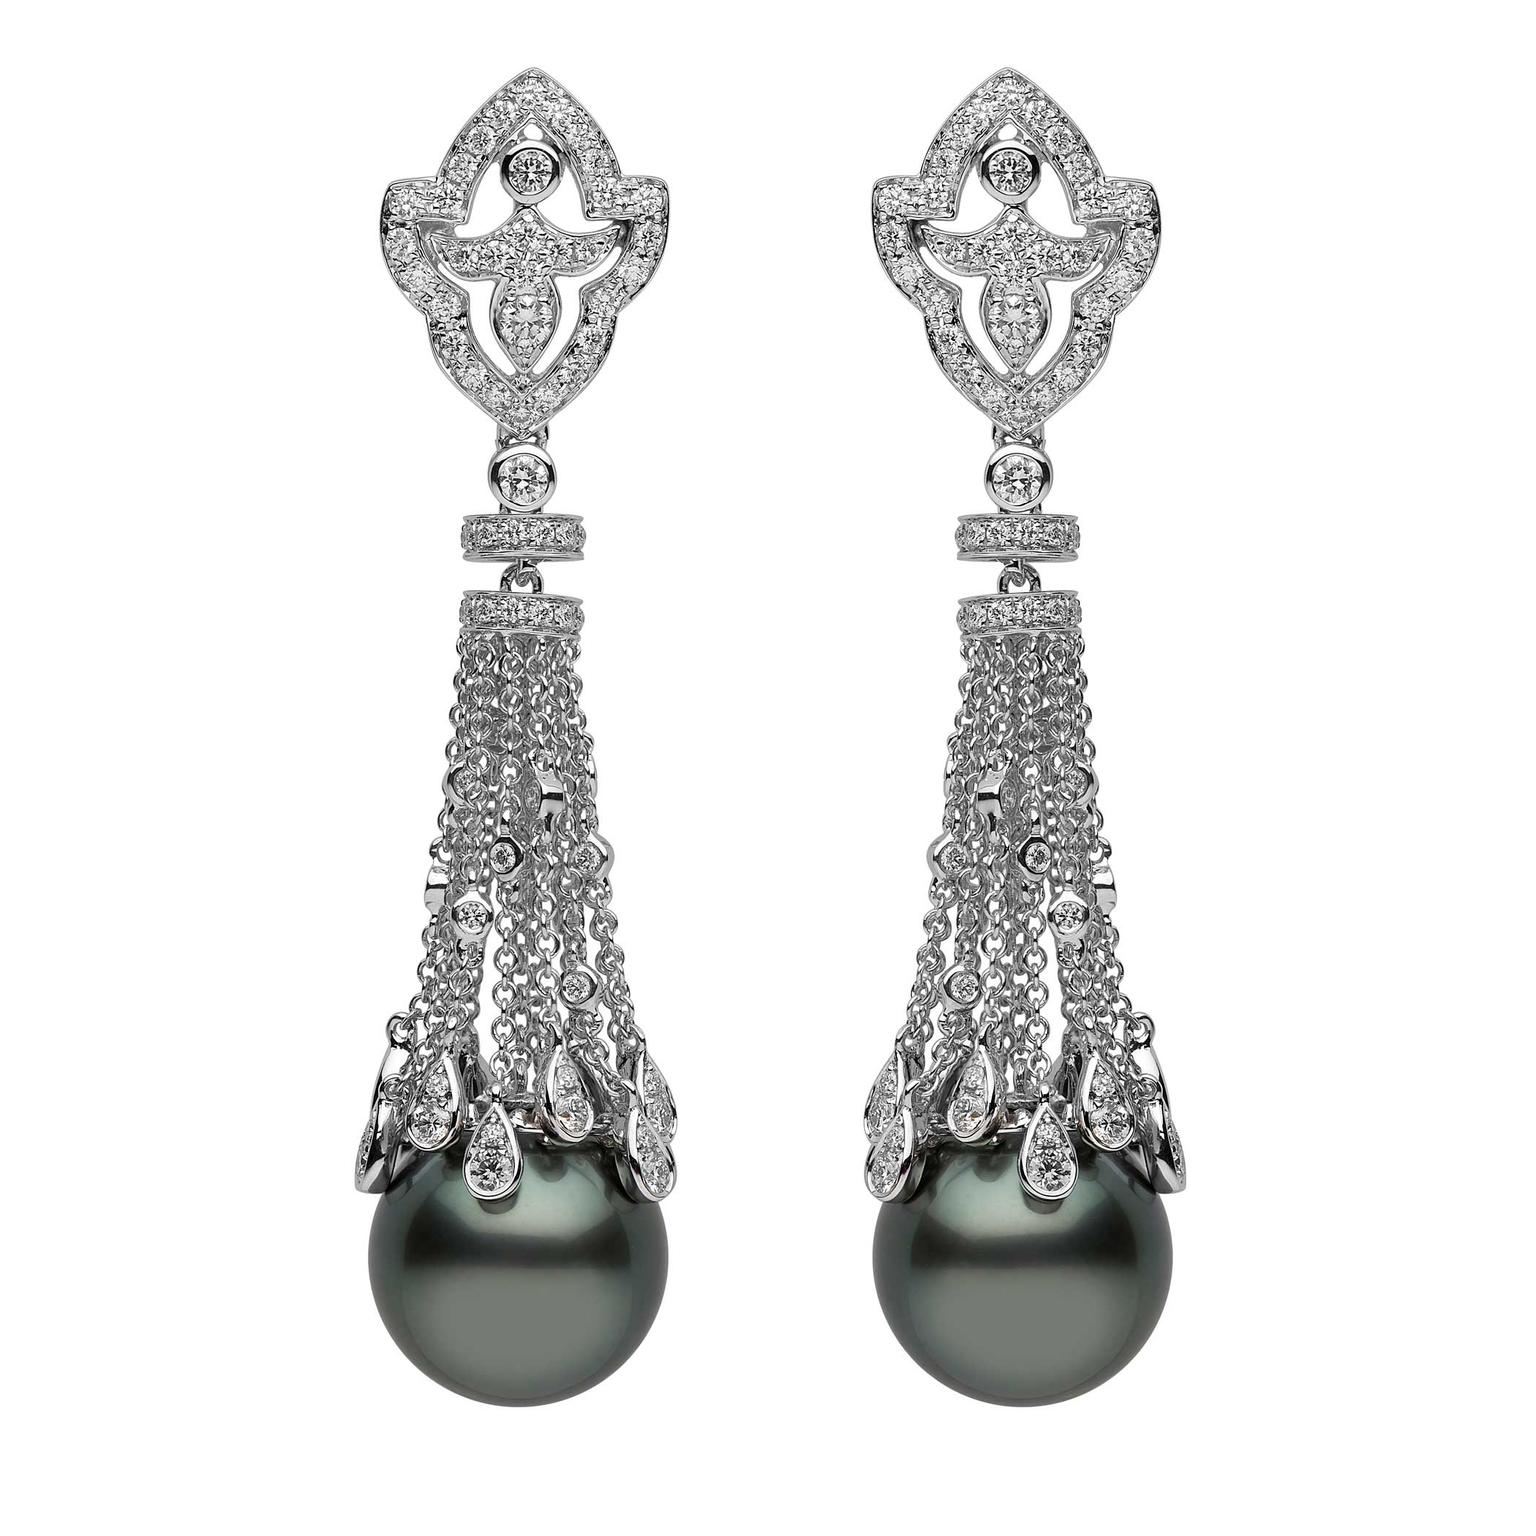 YOKO London Tahitian pearl earrings